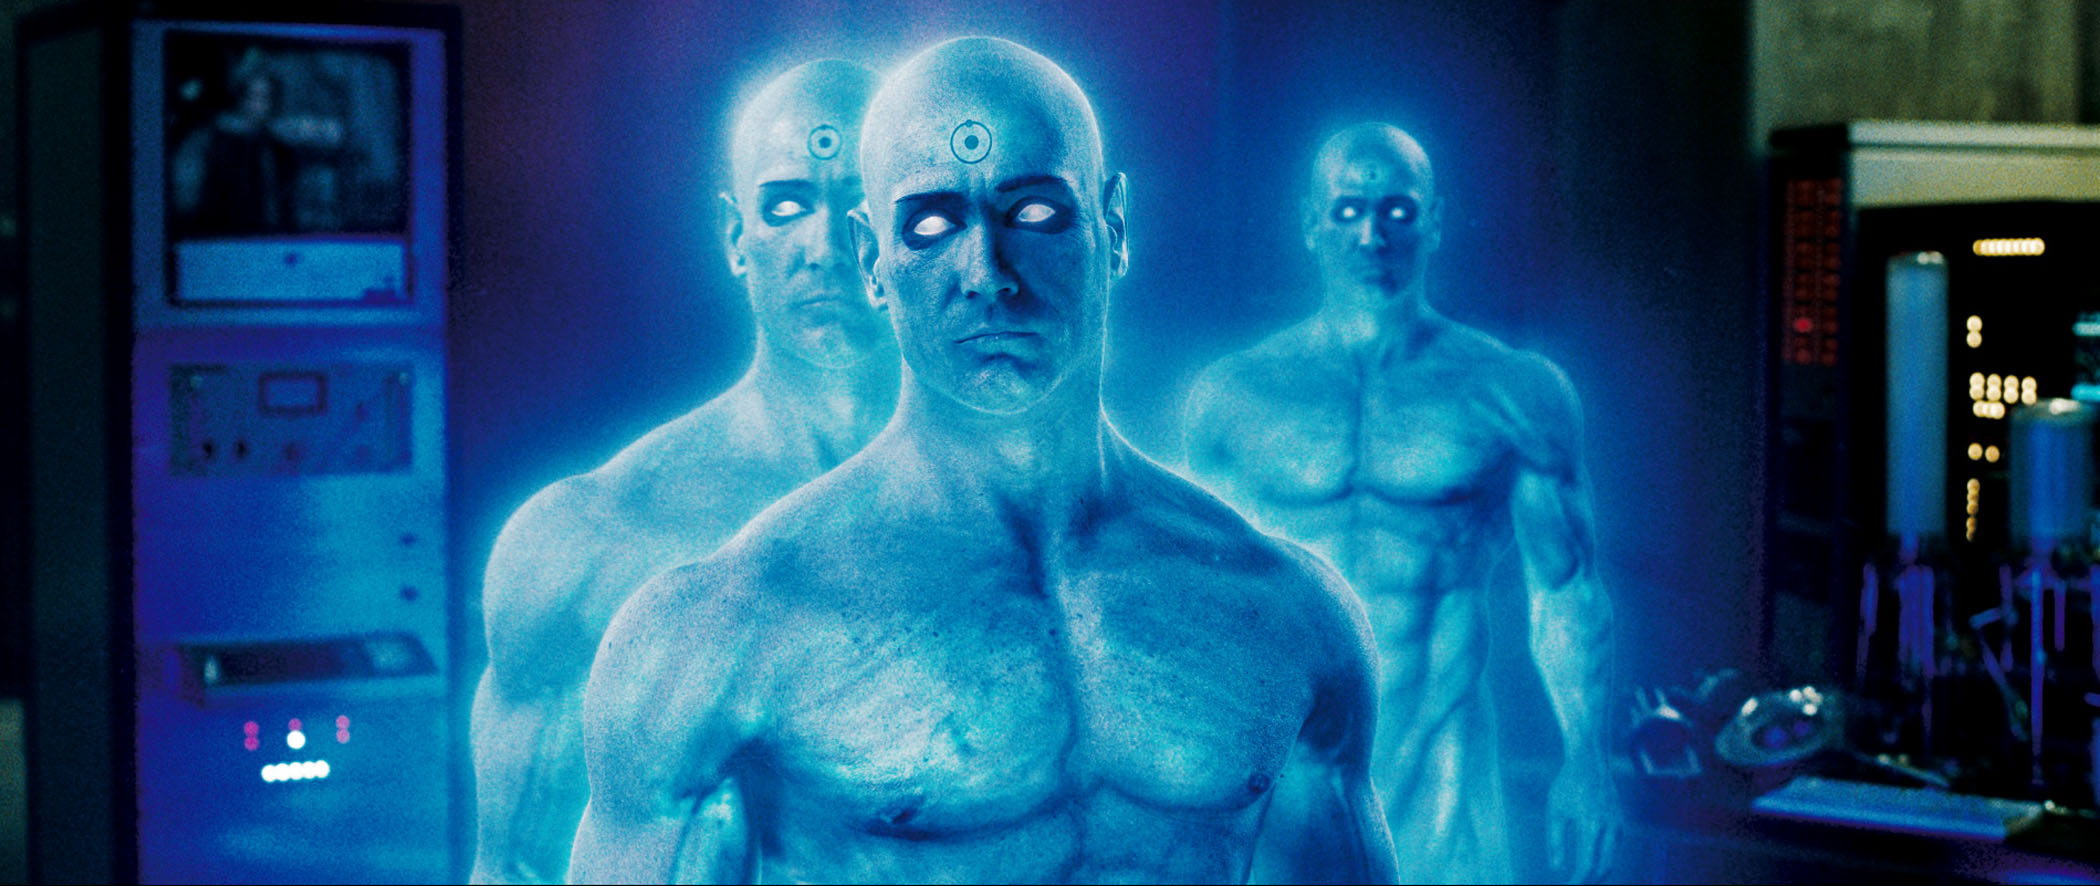 Фильм - Хранители  Dr Manhattan Doctor Manhattan Greg Plitt Обои